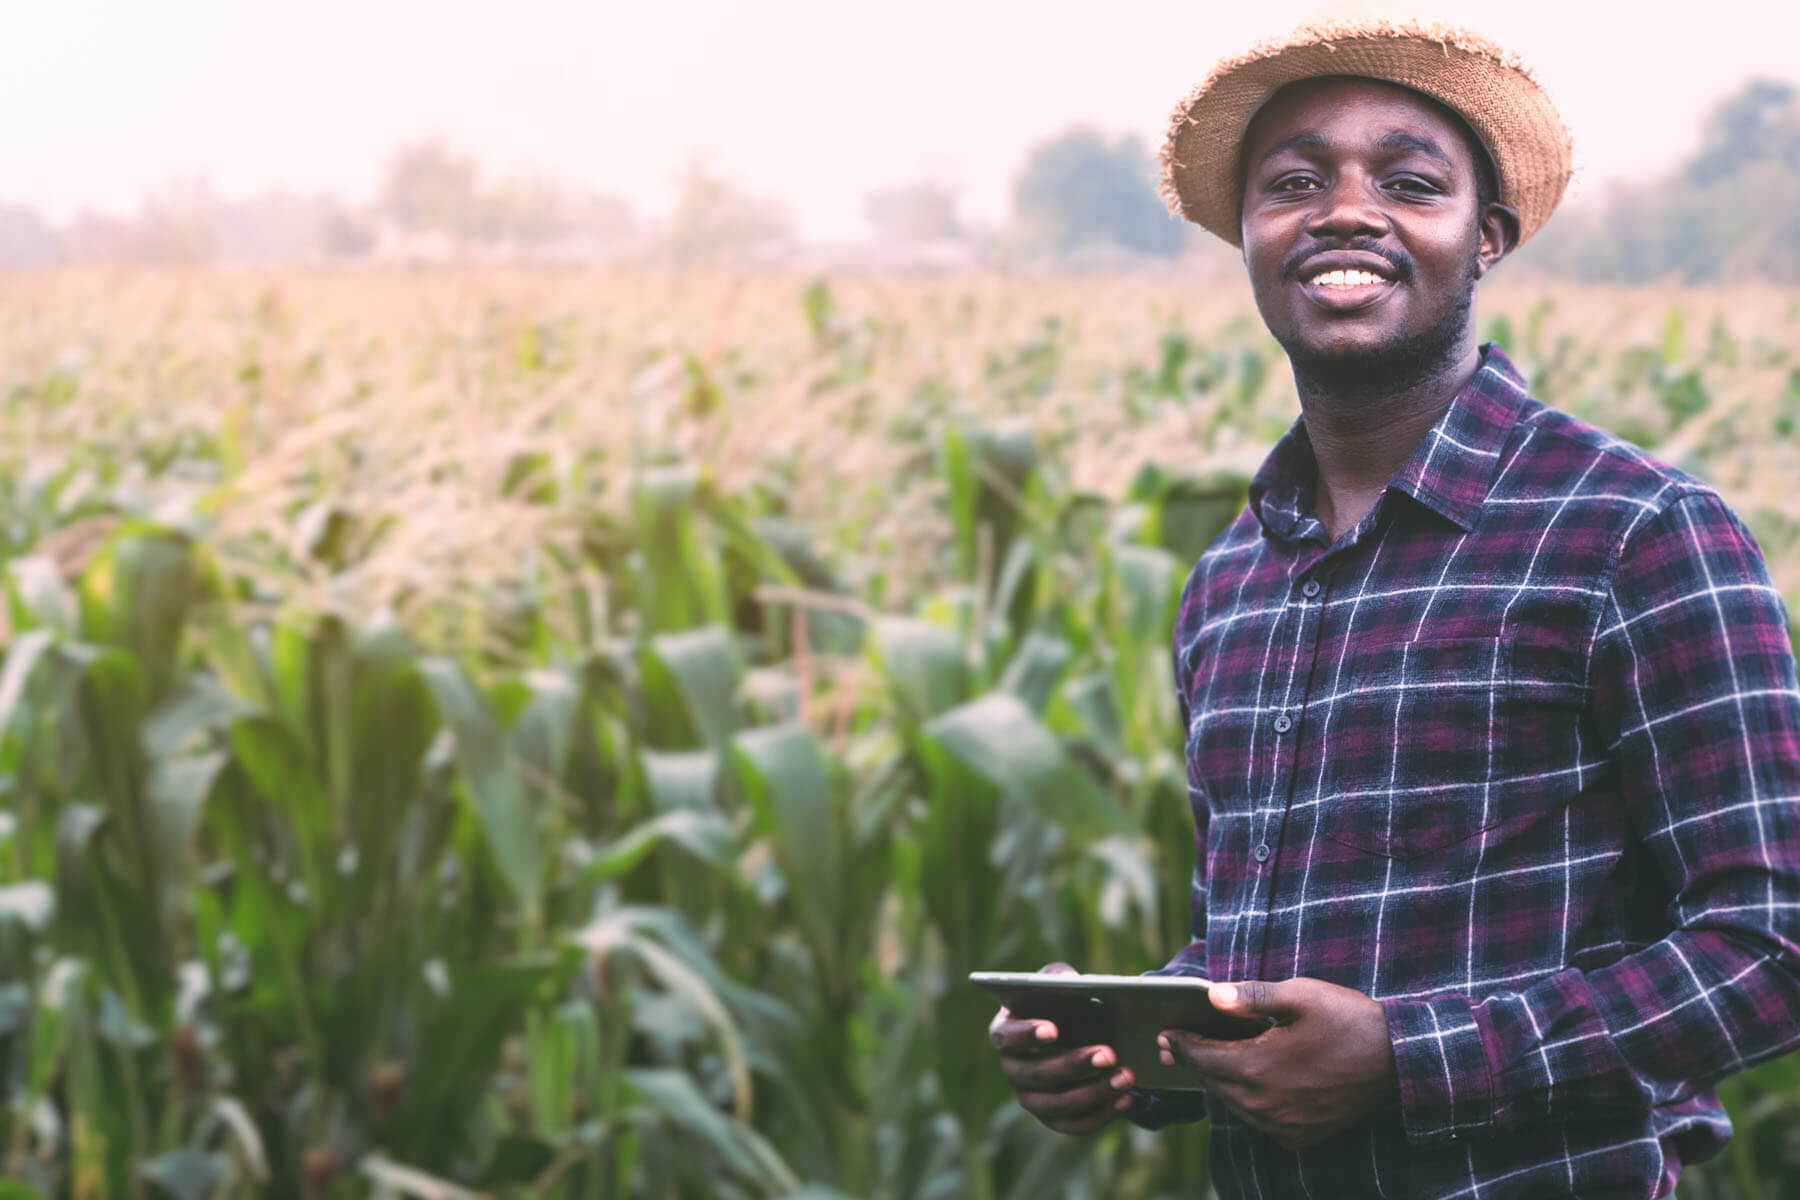 Ten (10) Agribusiness Startups participates in Agritech Investment Readiness Accelerator Program